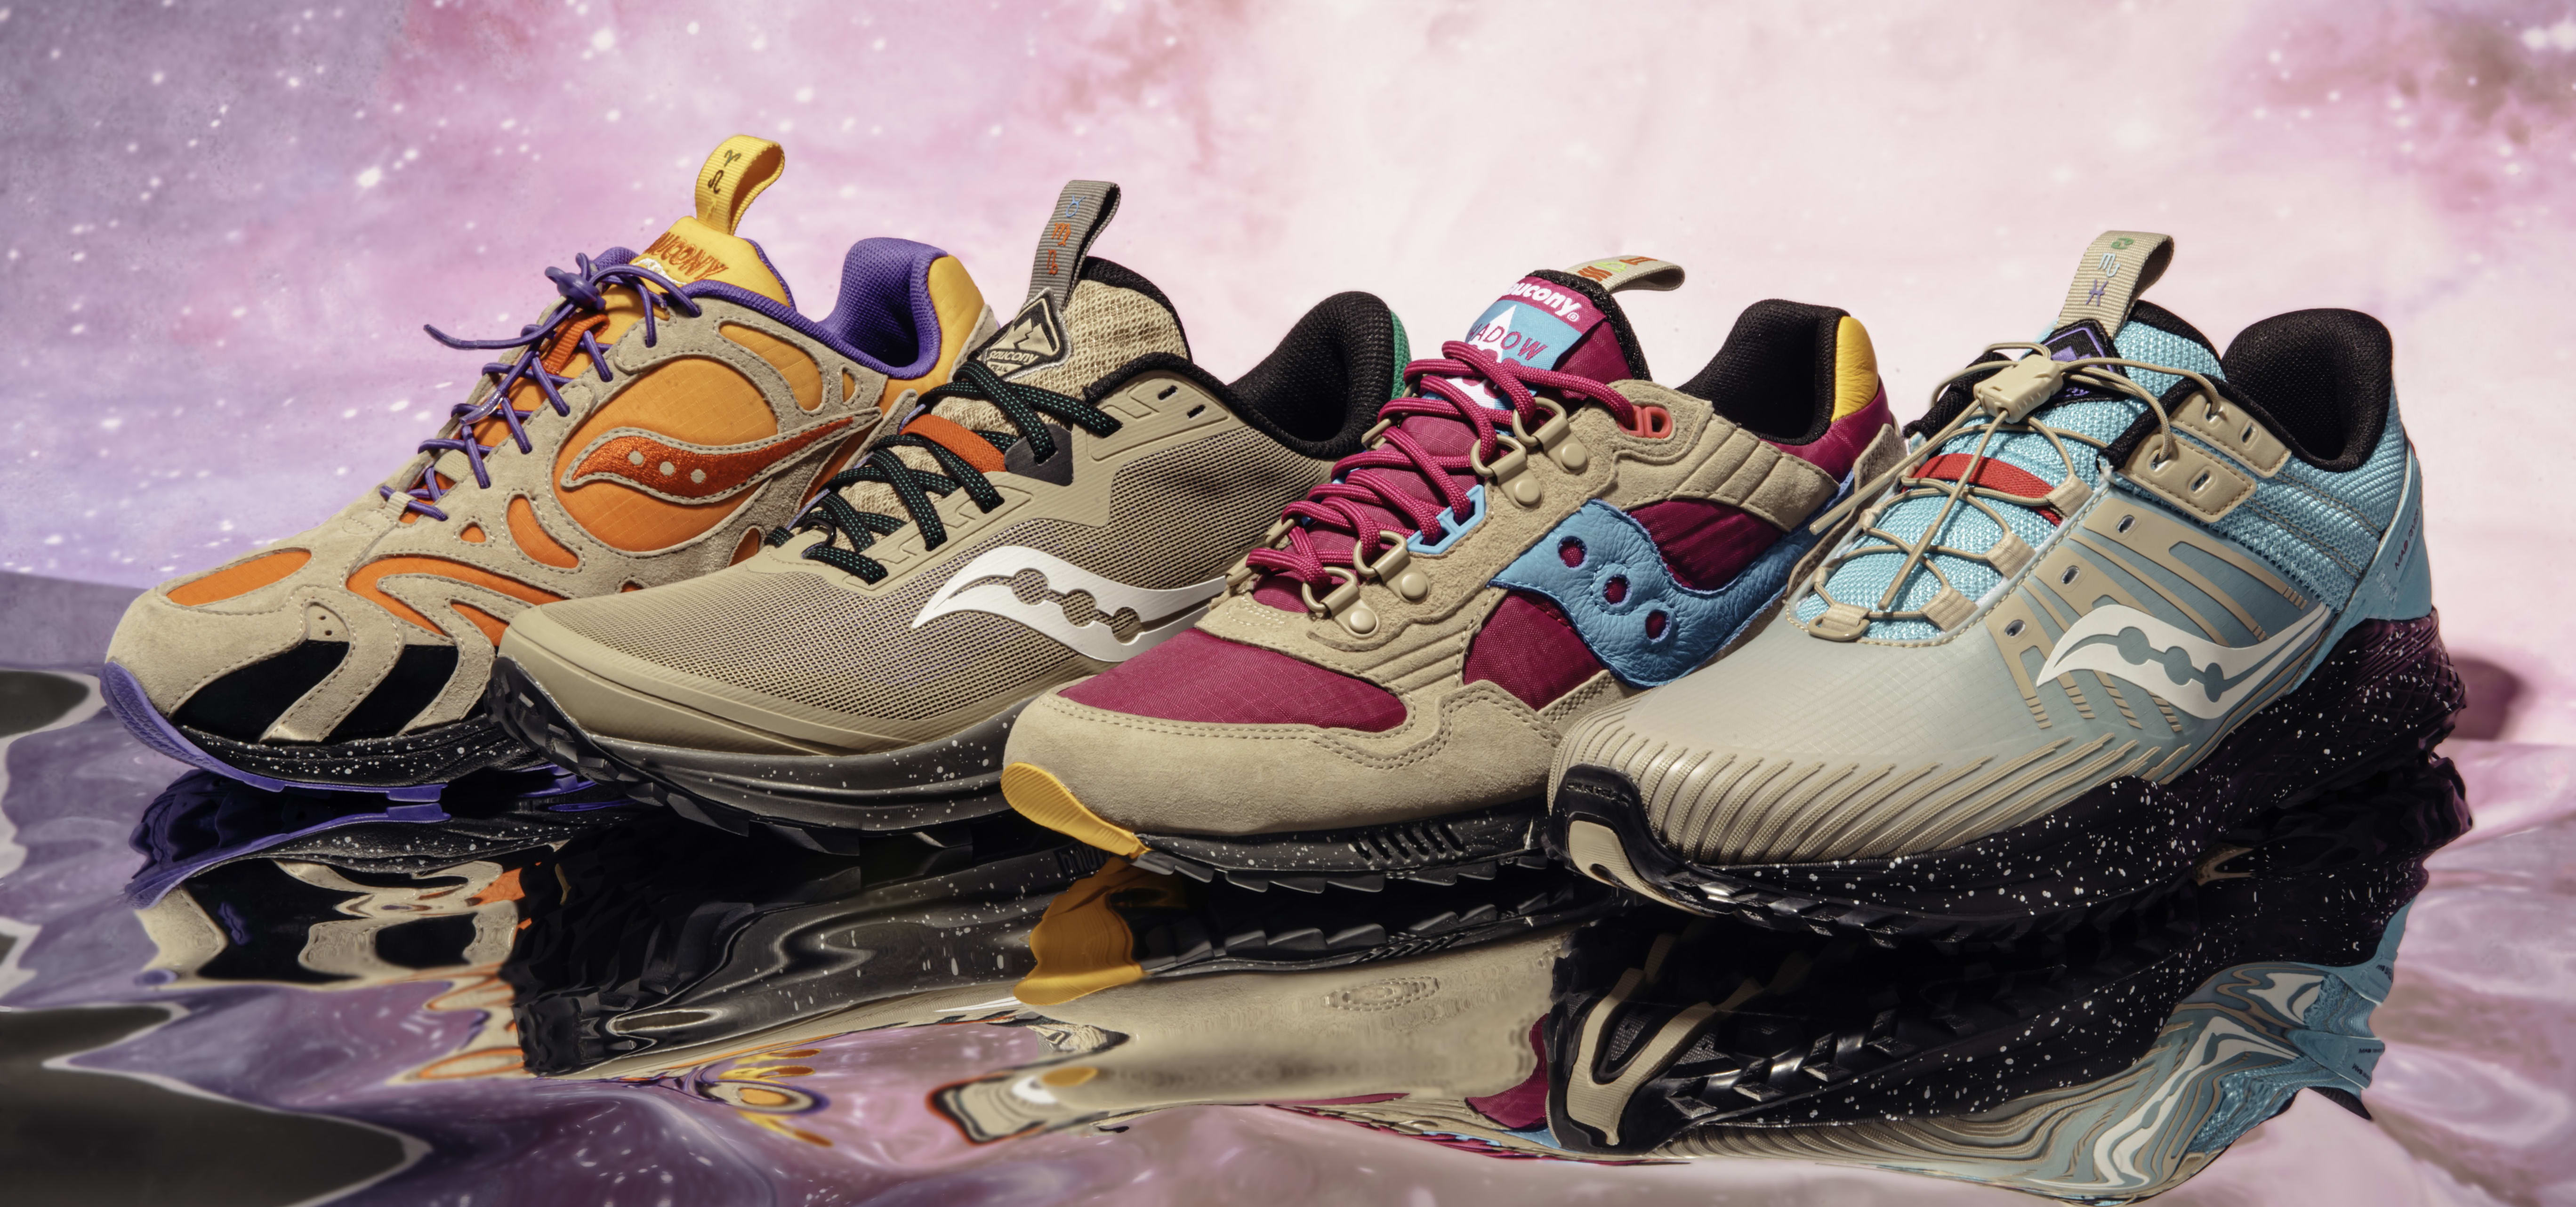 Saucony 'Astrotrail' Pack